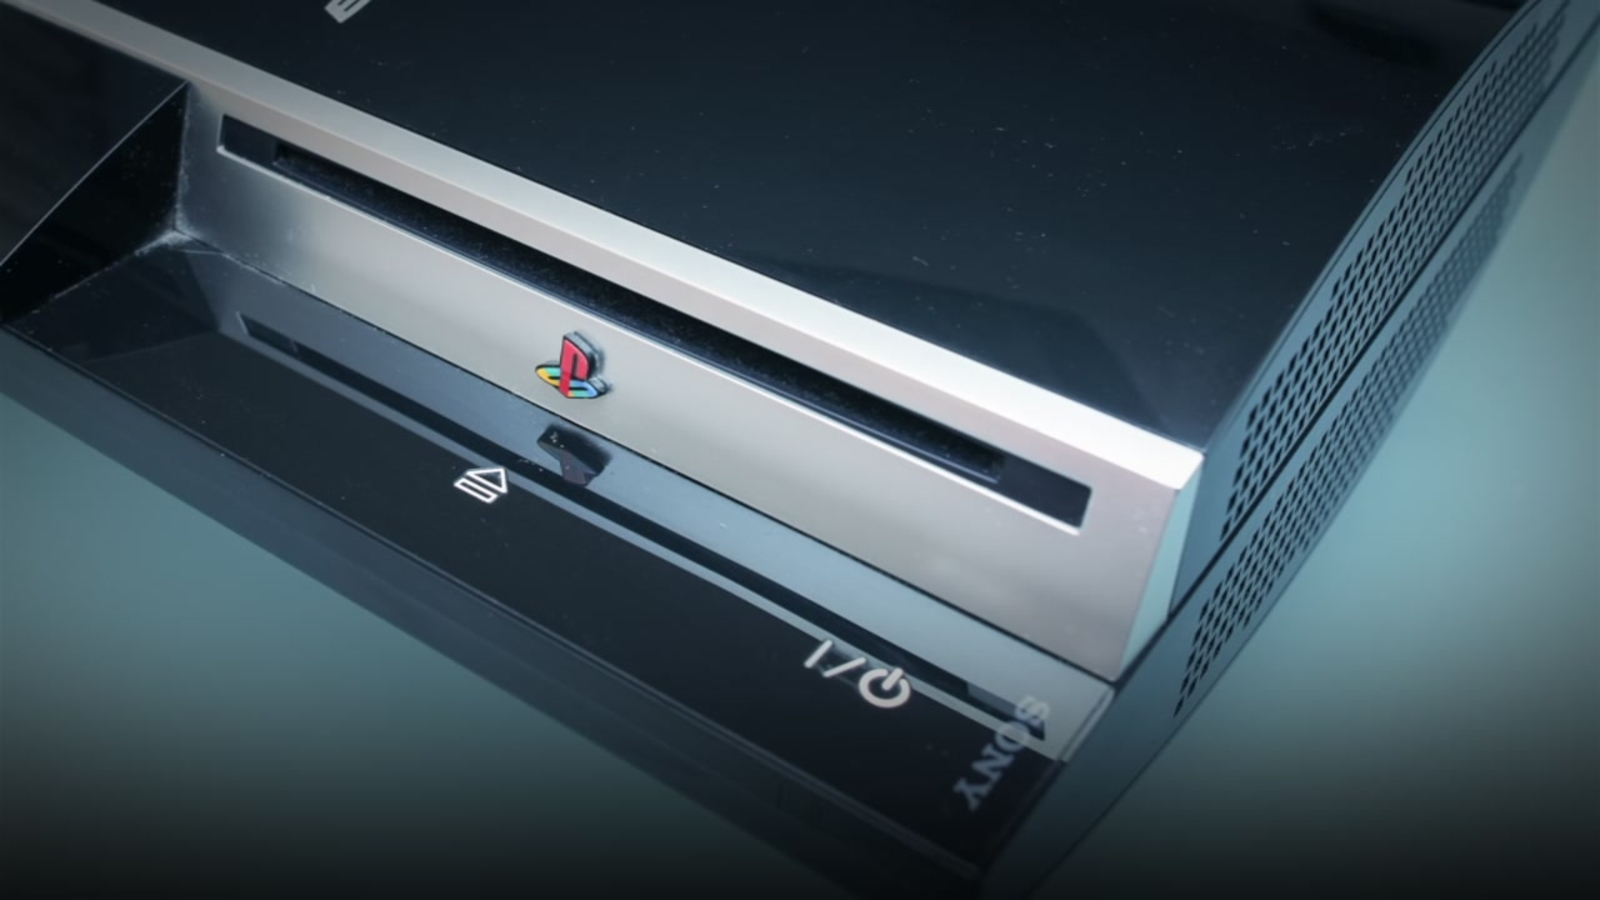 Own an original Playstation 3? You have less than a month to get money back   abc7.com